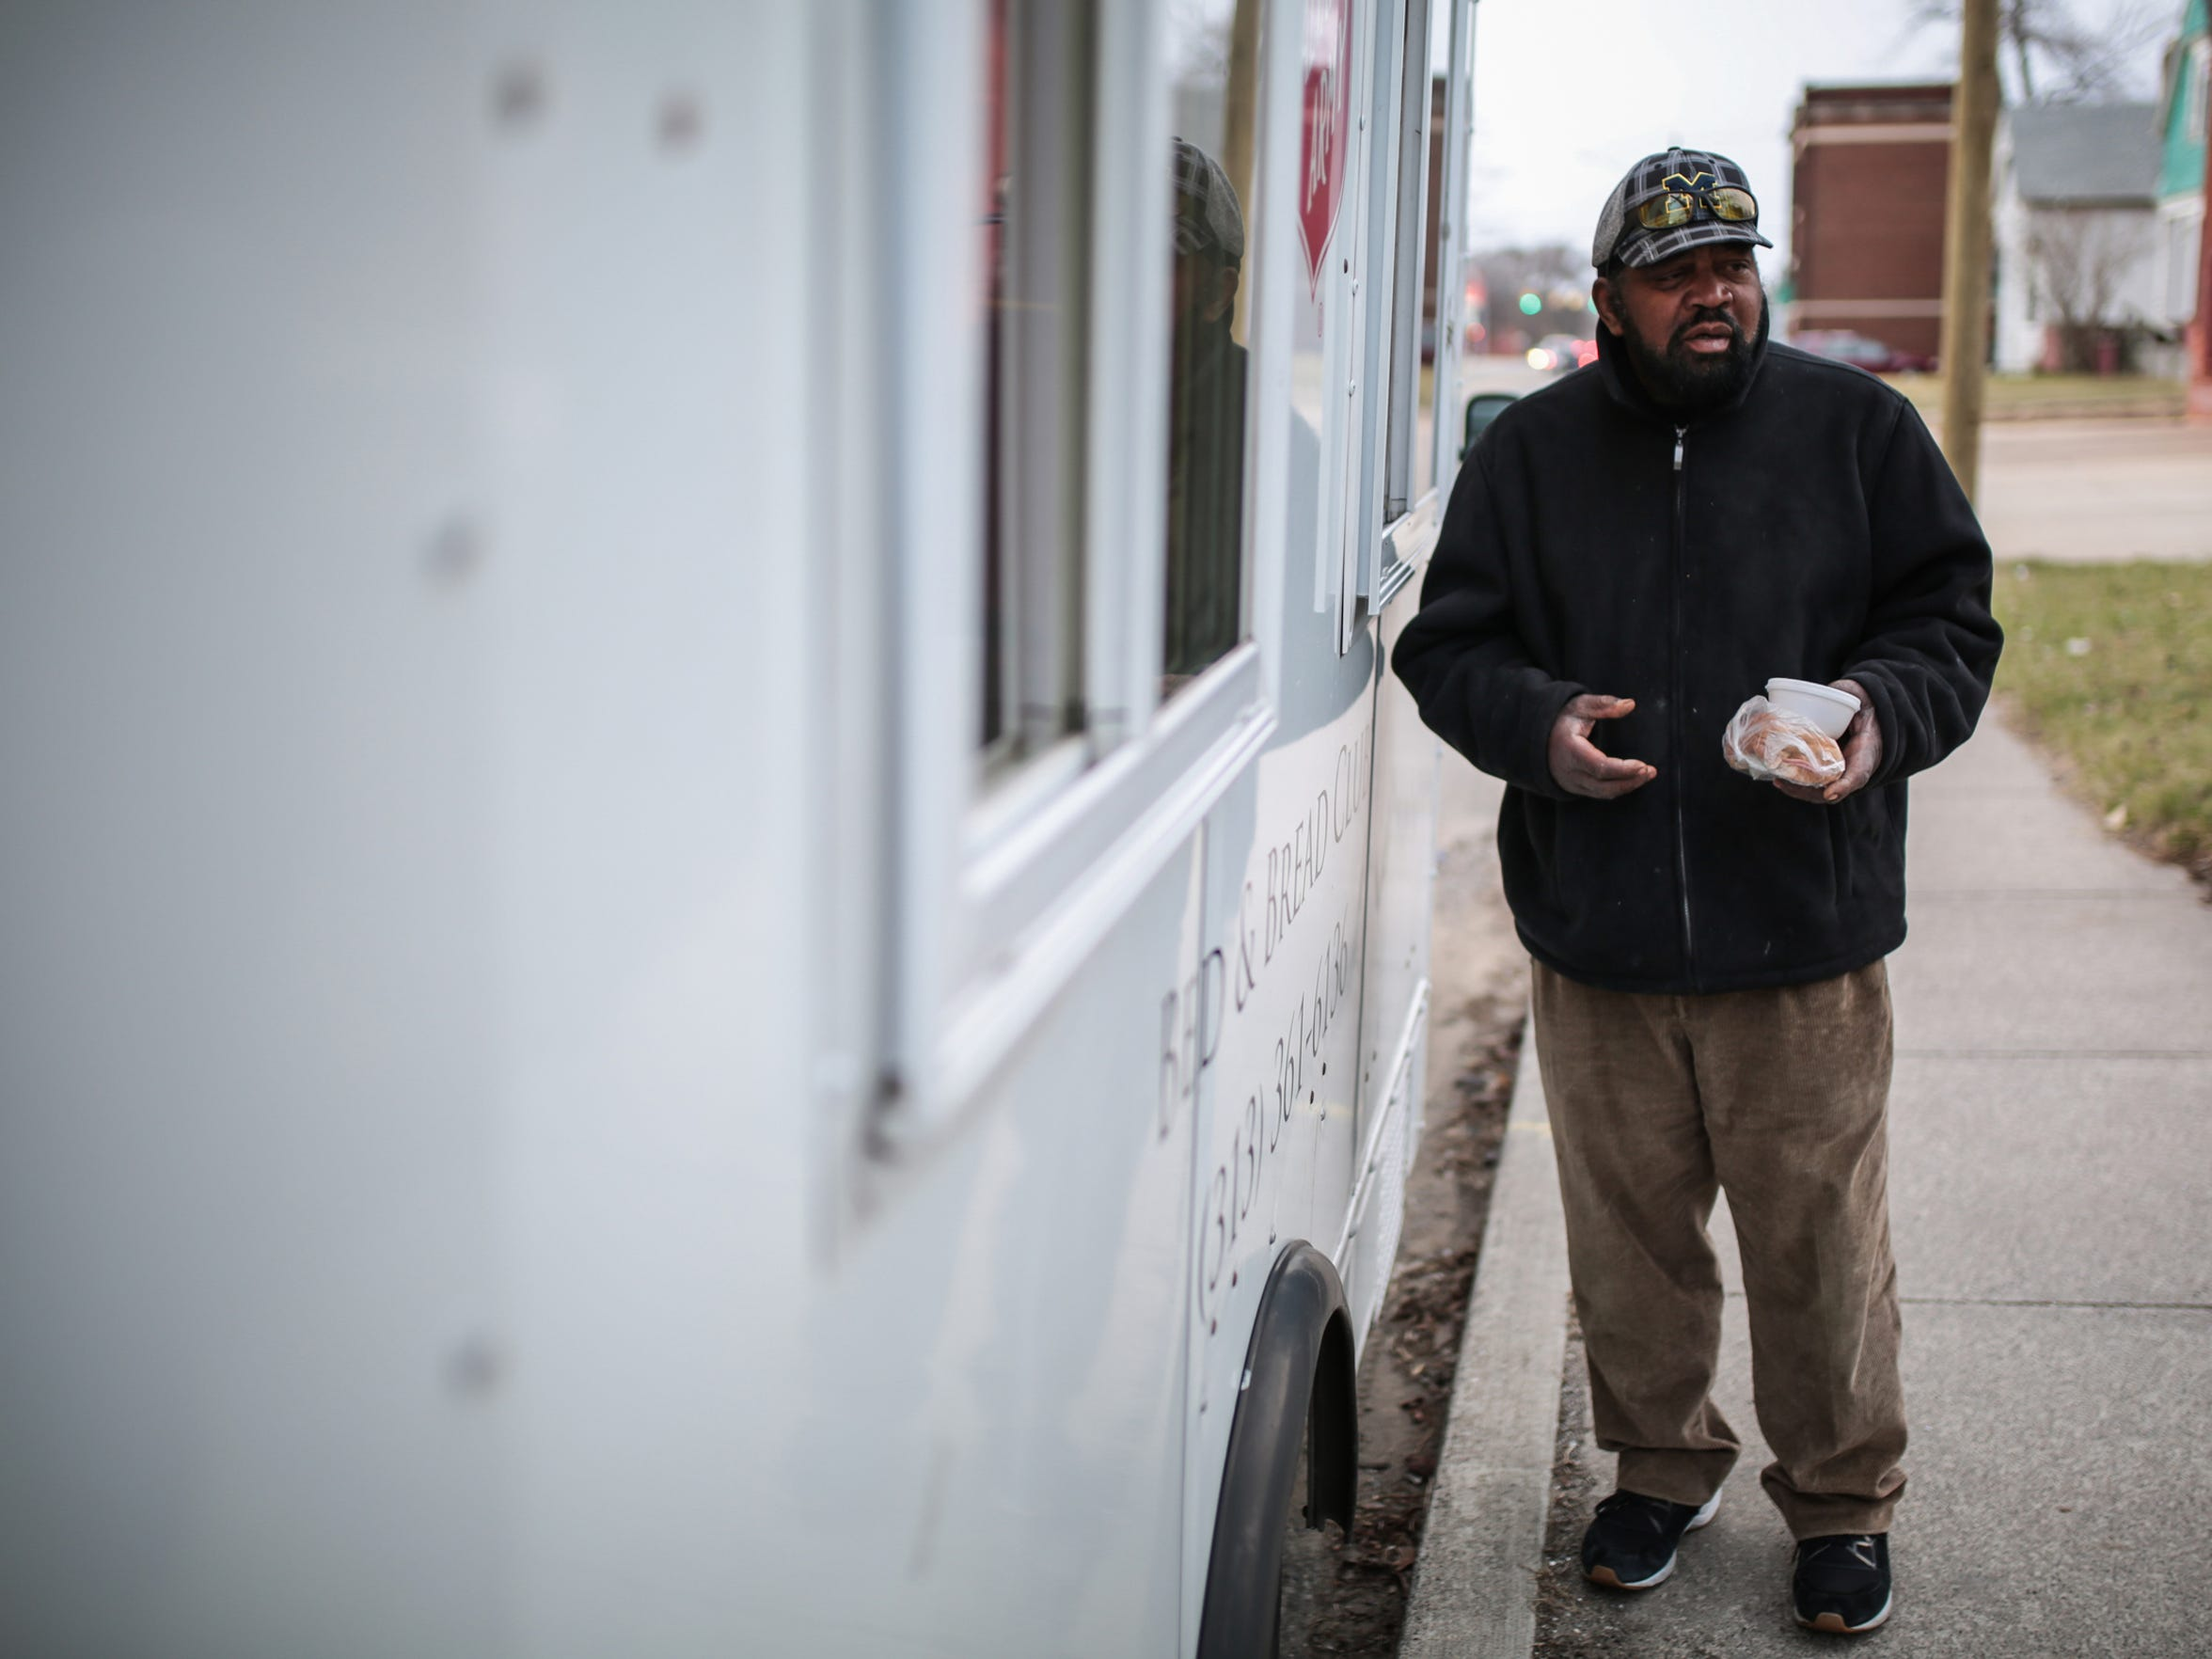 Darnell Taylor, 63, of Detroit receives a meal from the Salvation Army's Bed and Bread program food truck on Thursday, March 2, 2017, as he stands on Mt. Elliott on Detroit's east side. Taylor was once a local minister who operated three homeless shelters.